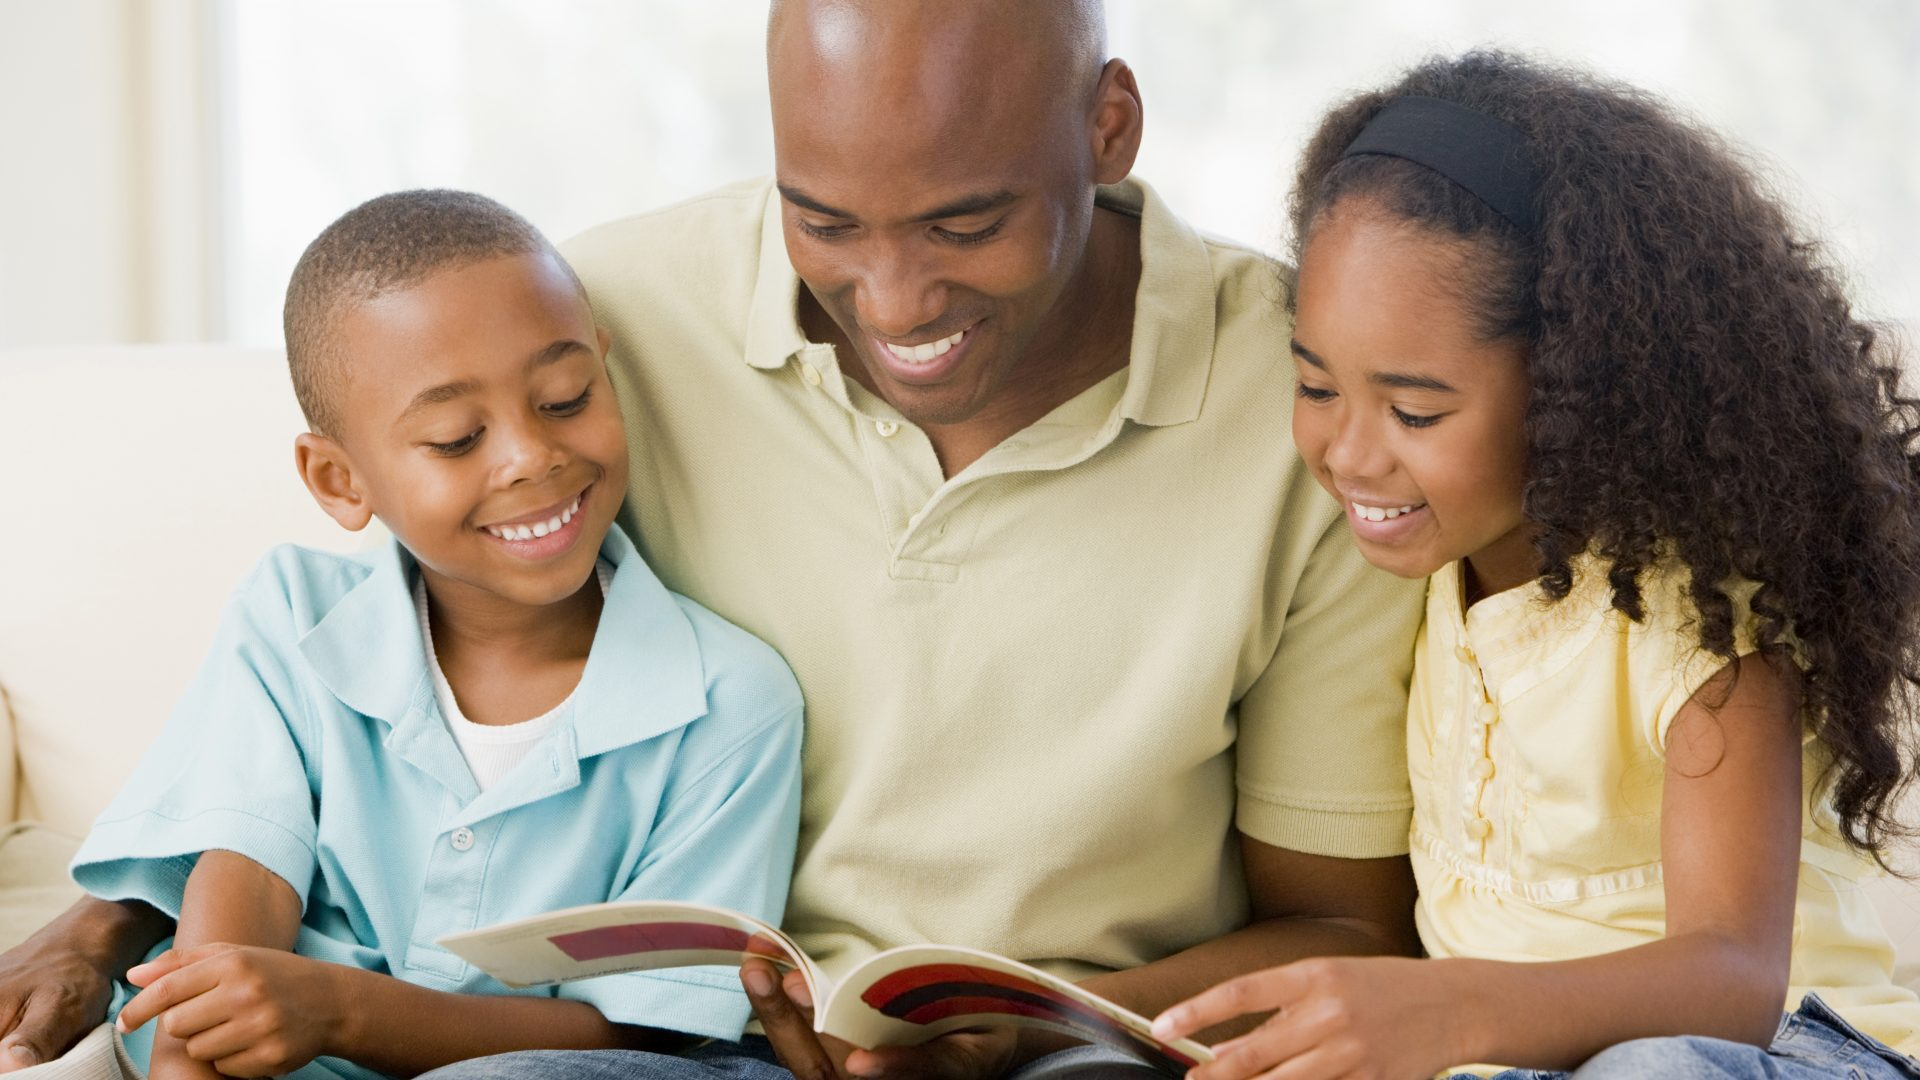 cropped-man-and-two-children-sitting-in-living-room-reading-book-and-smiling_SFQvbsArs-1